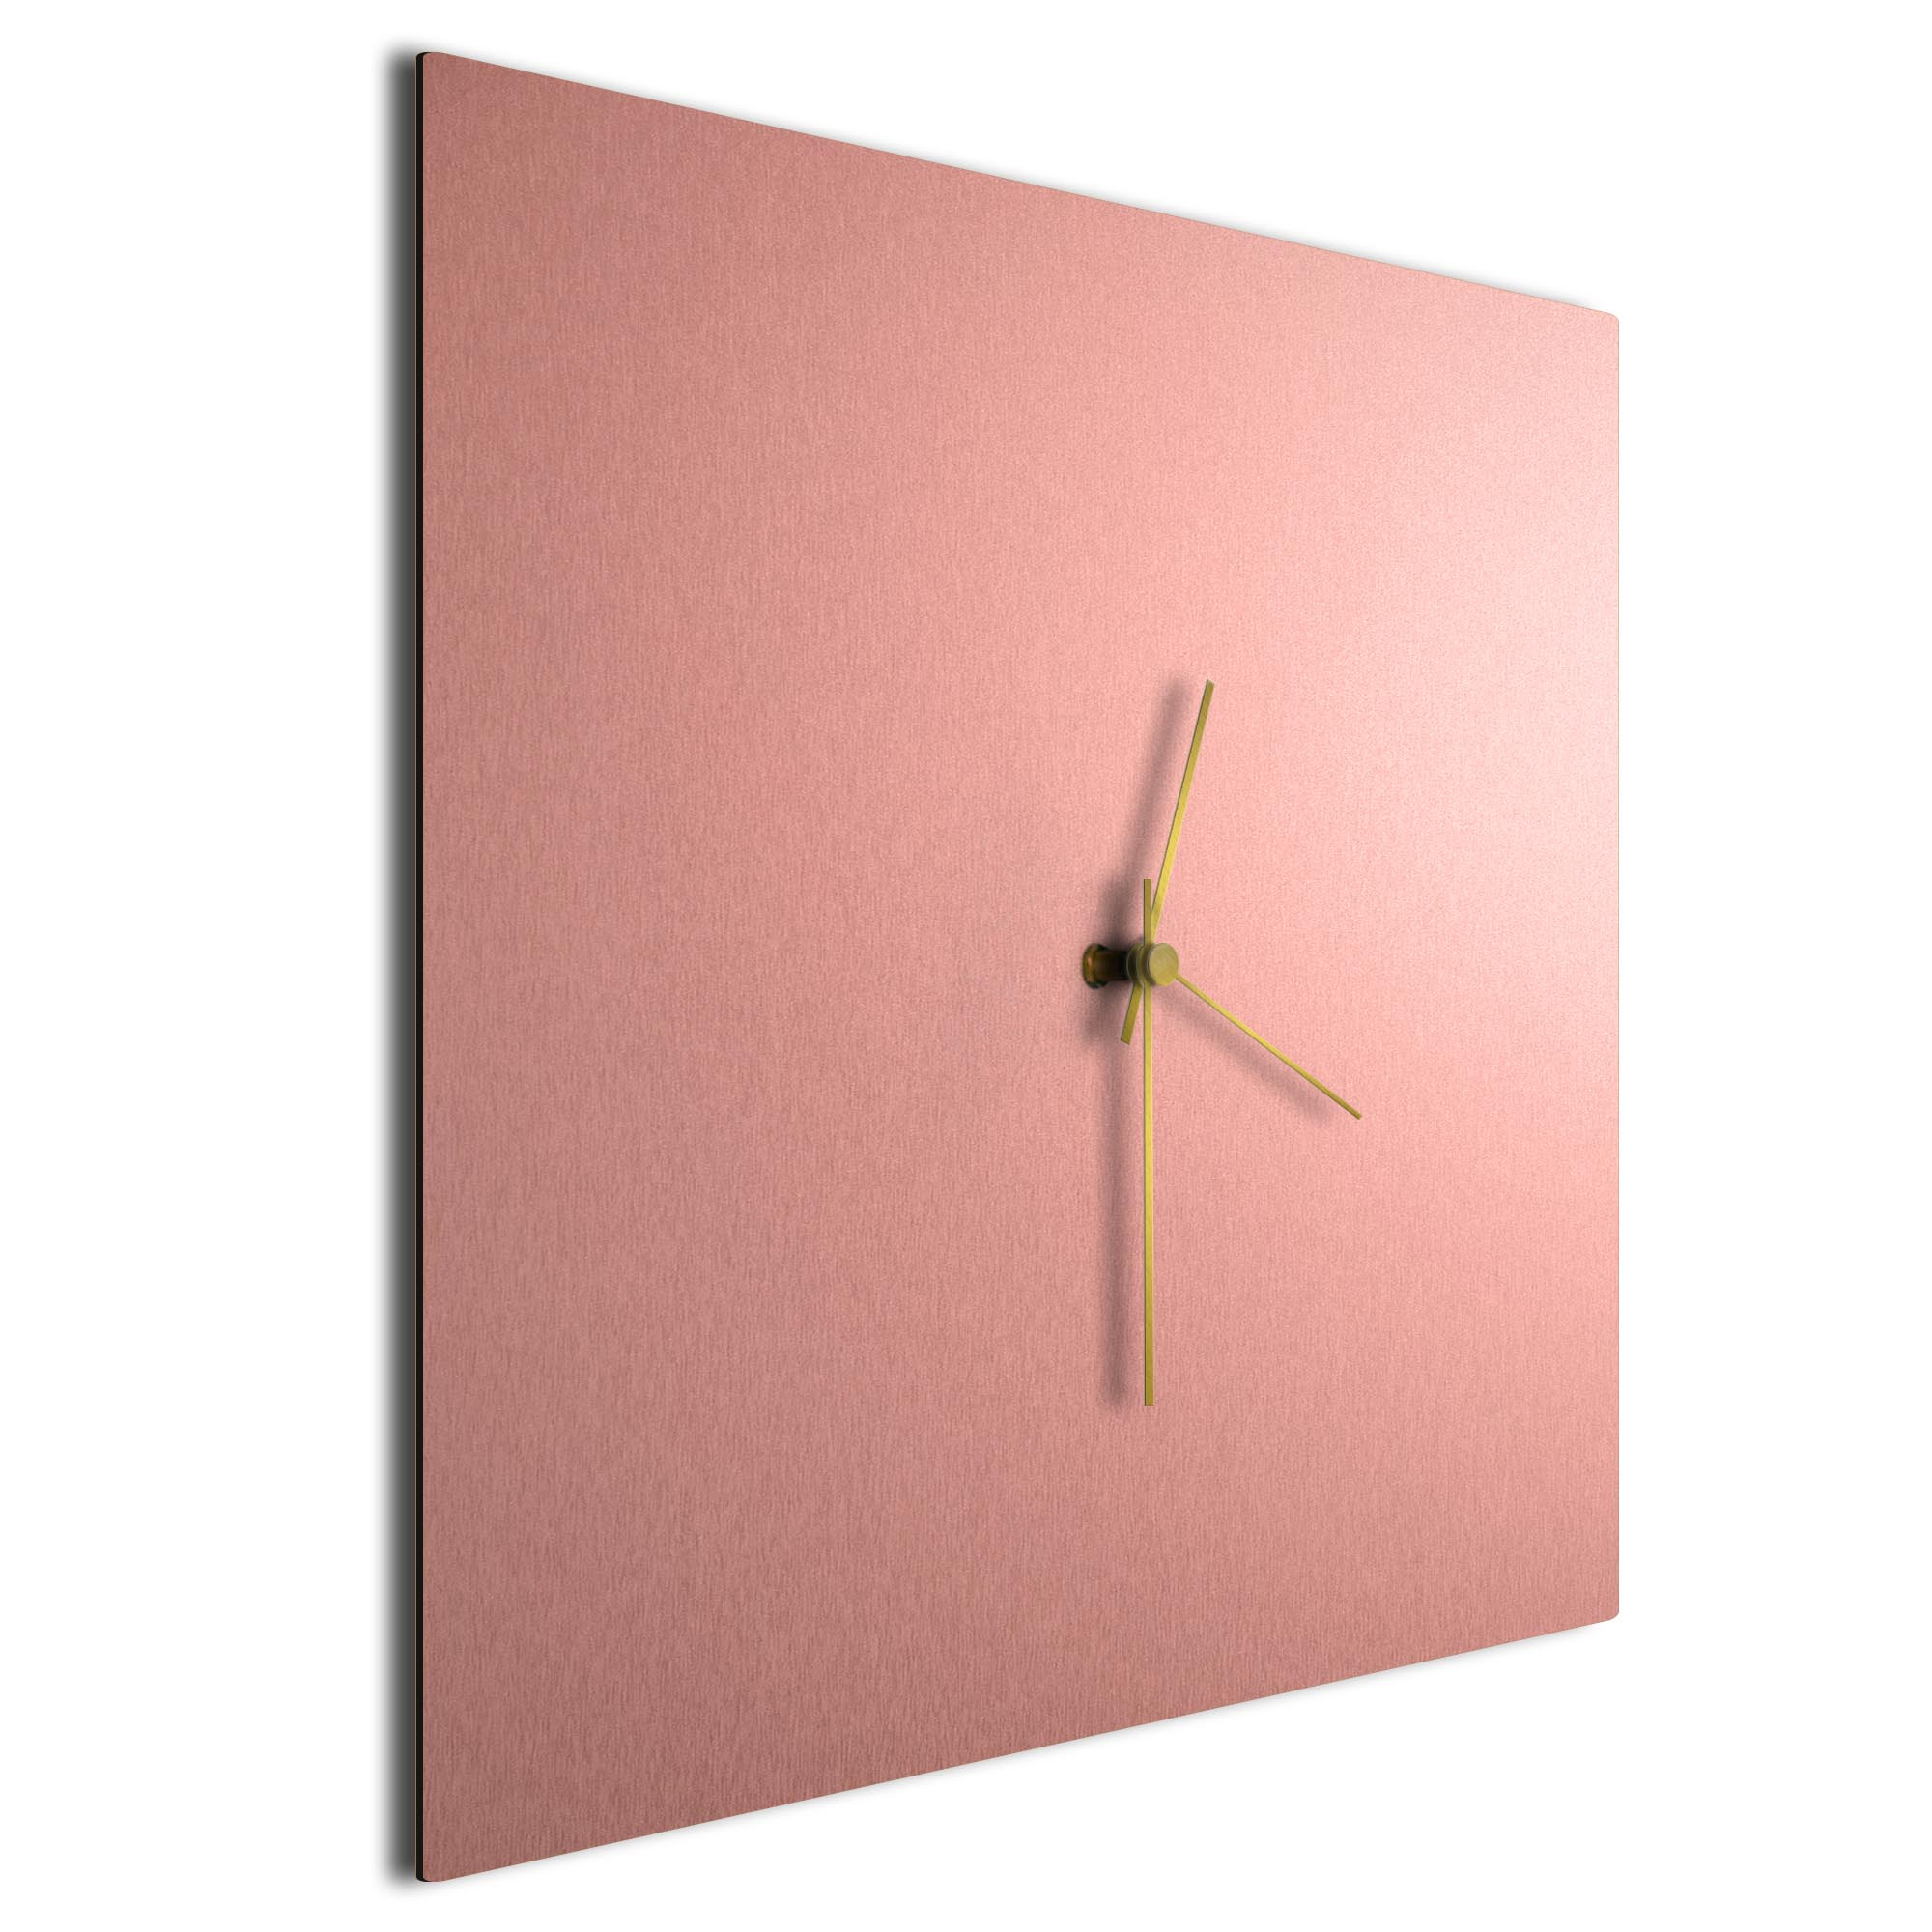 Coppersmith Square Clock Large Gold - Image 2